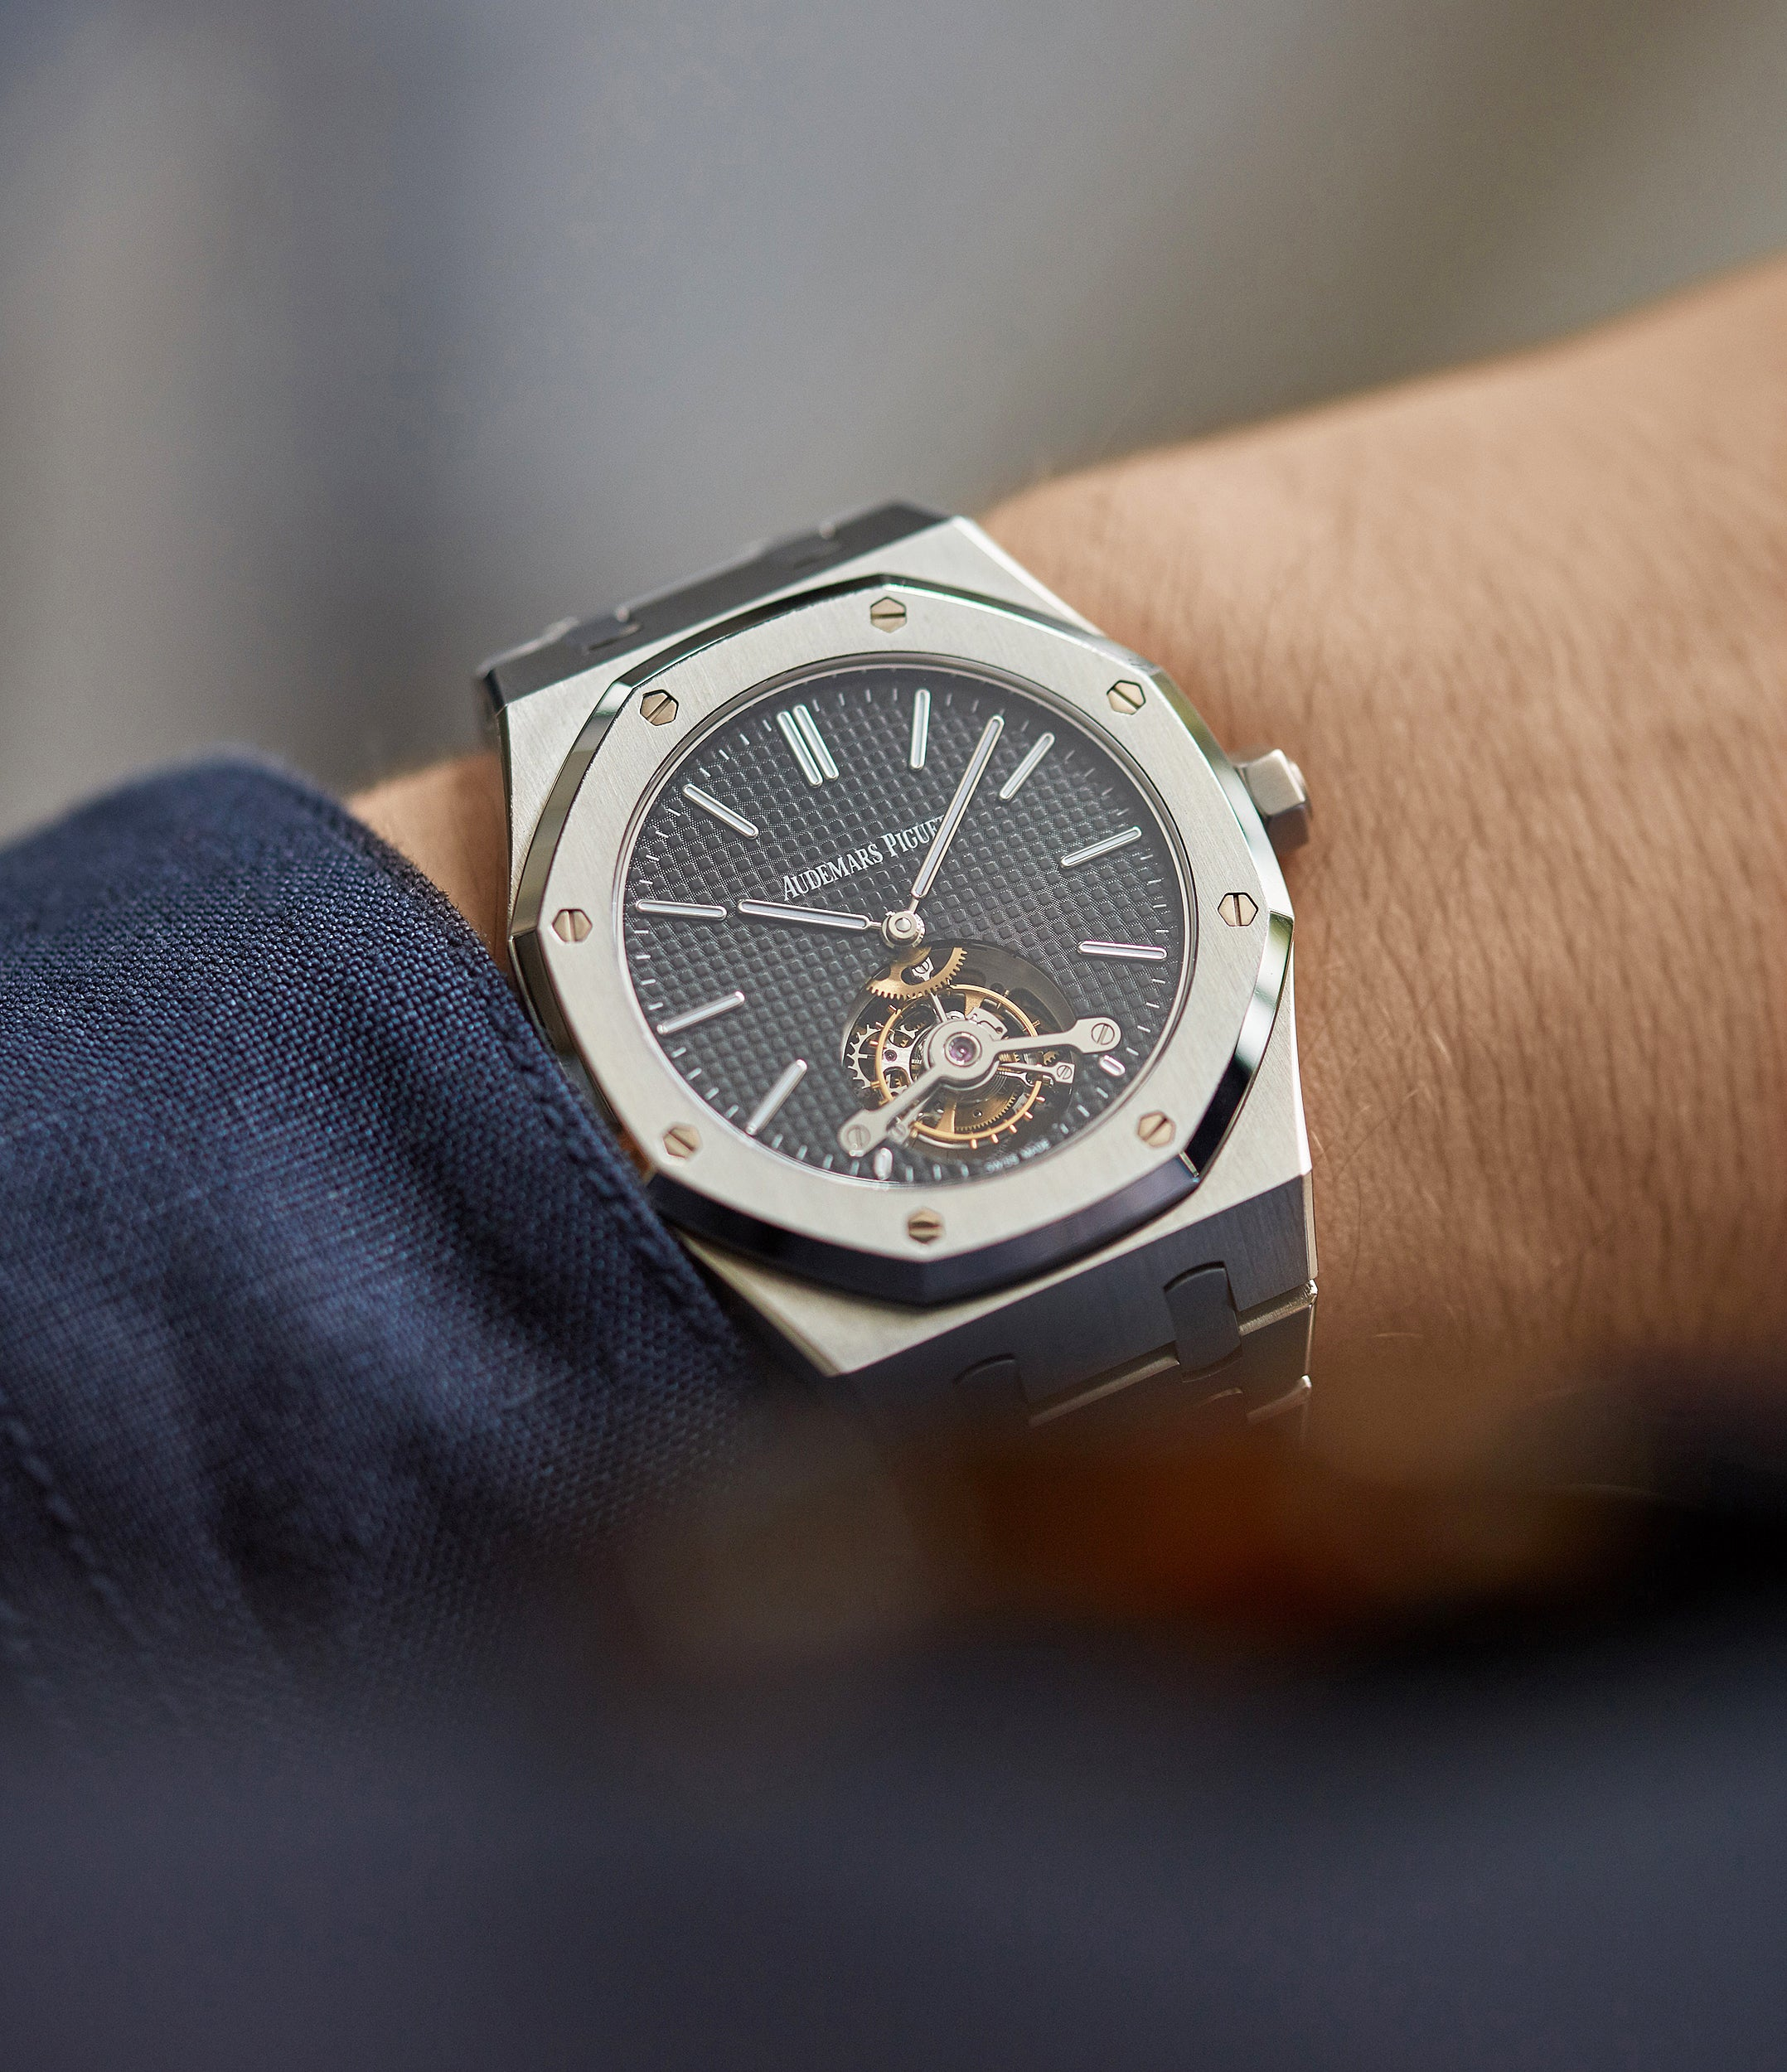 on the wrist Audemars Piguet Royal Oak Tourbillon extra-slim Special Edition Japanese steel pre-owned watch for sale online at A Collected Man London UK specialist of rare watches